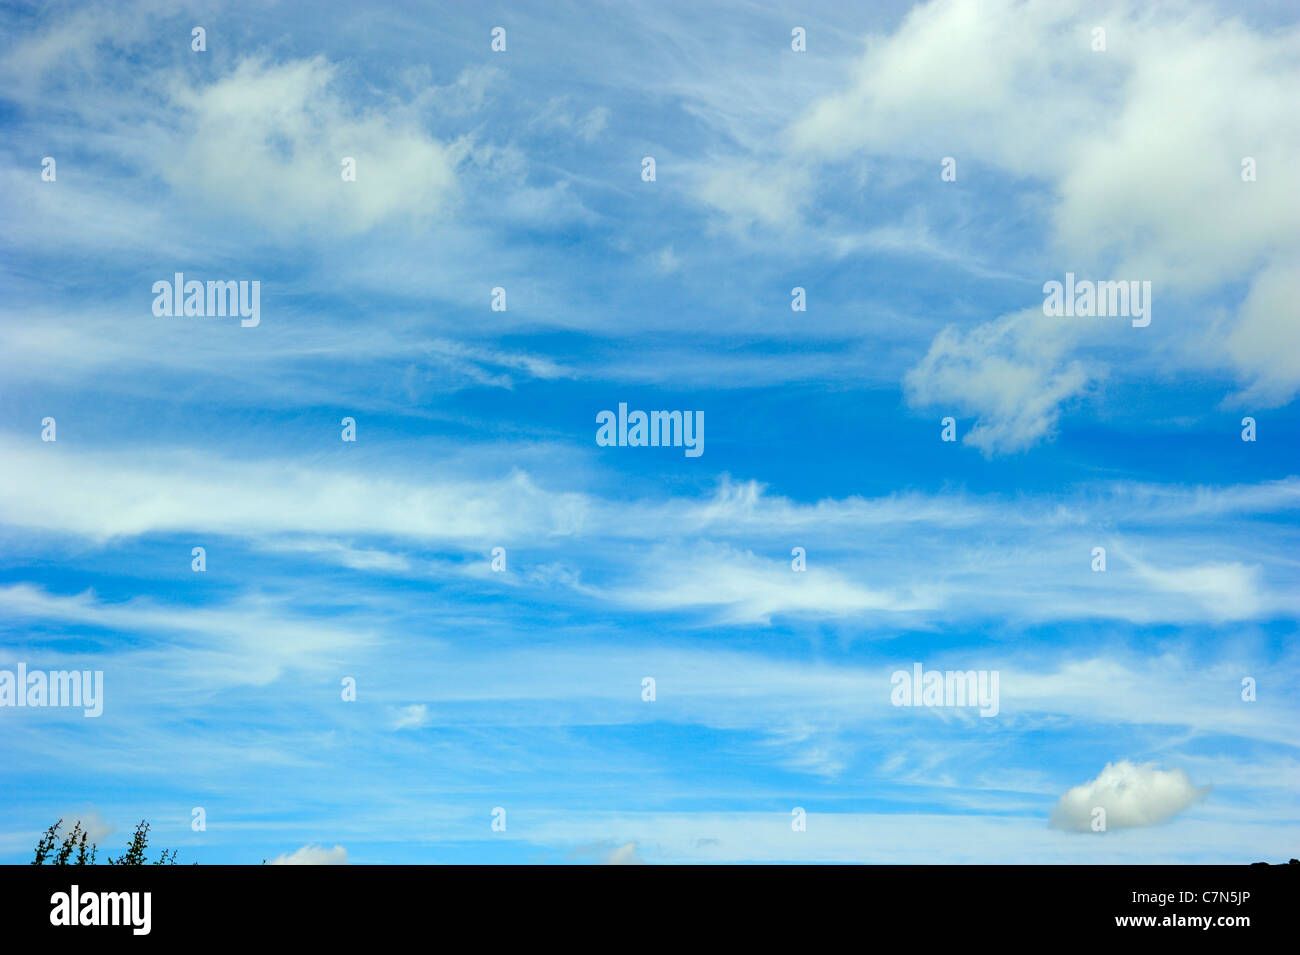 Wispy Clouds in a Summer Sky - Stock Image